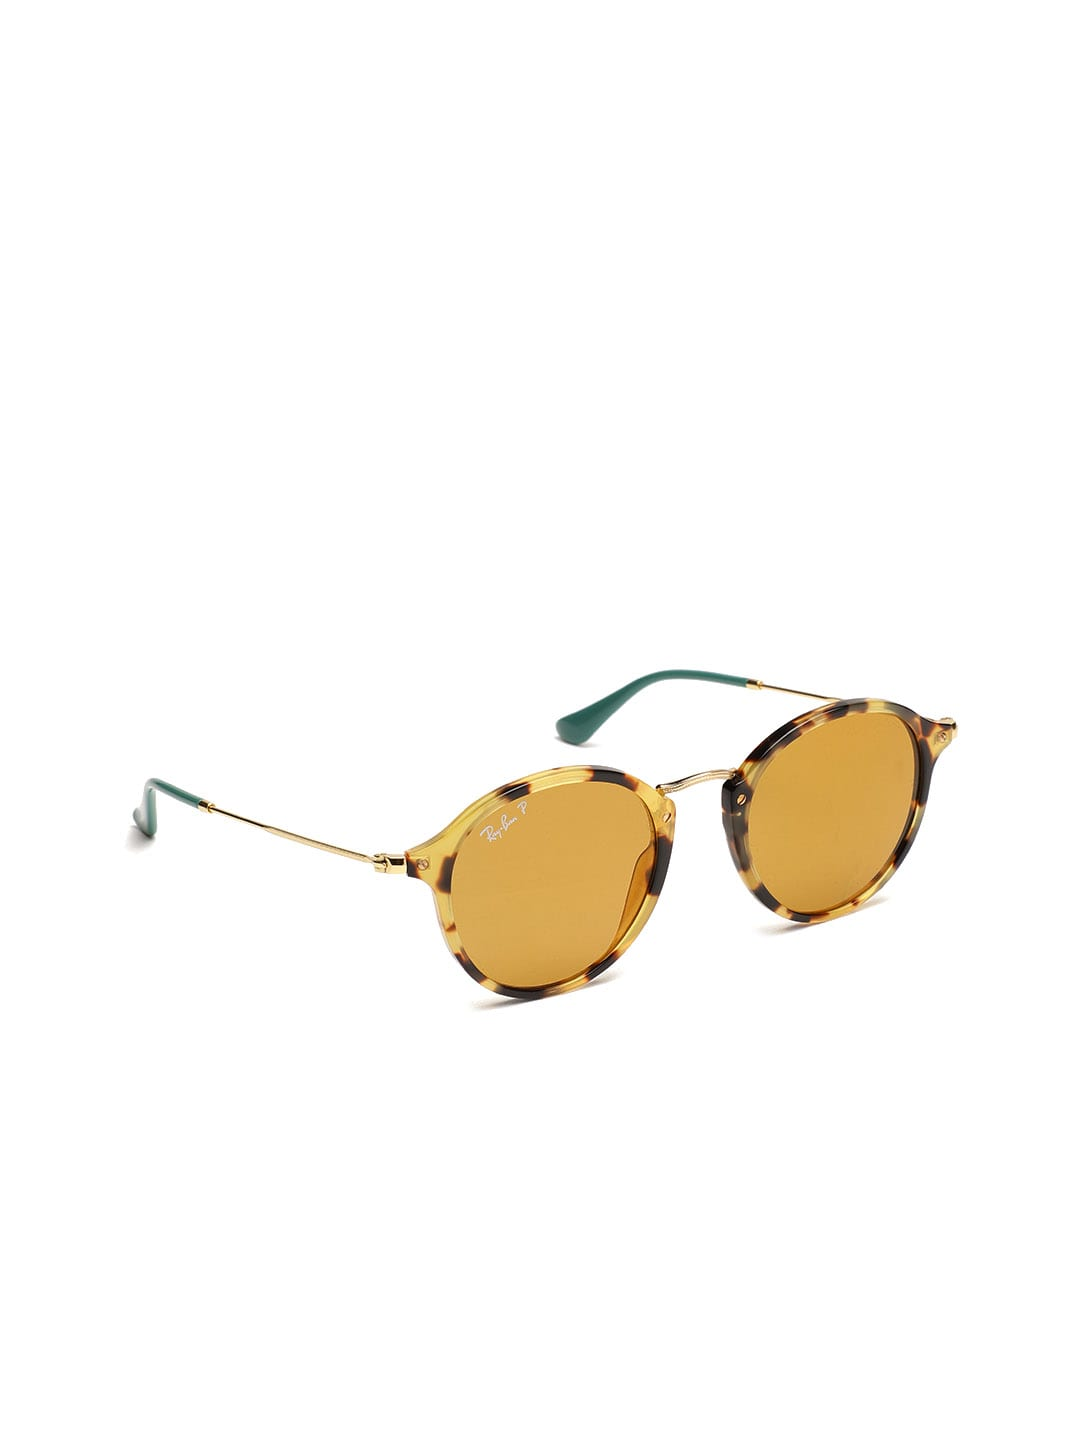 477c5def6f Ray Ban Ferrari Bracelet Sunglasses - Buy Ray Ban Ferrari Bracelet  Sunglasses online in India